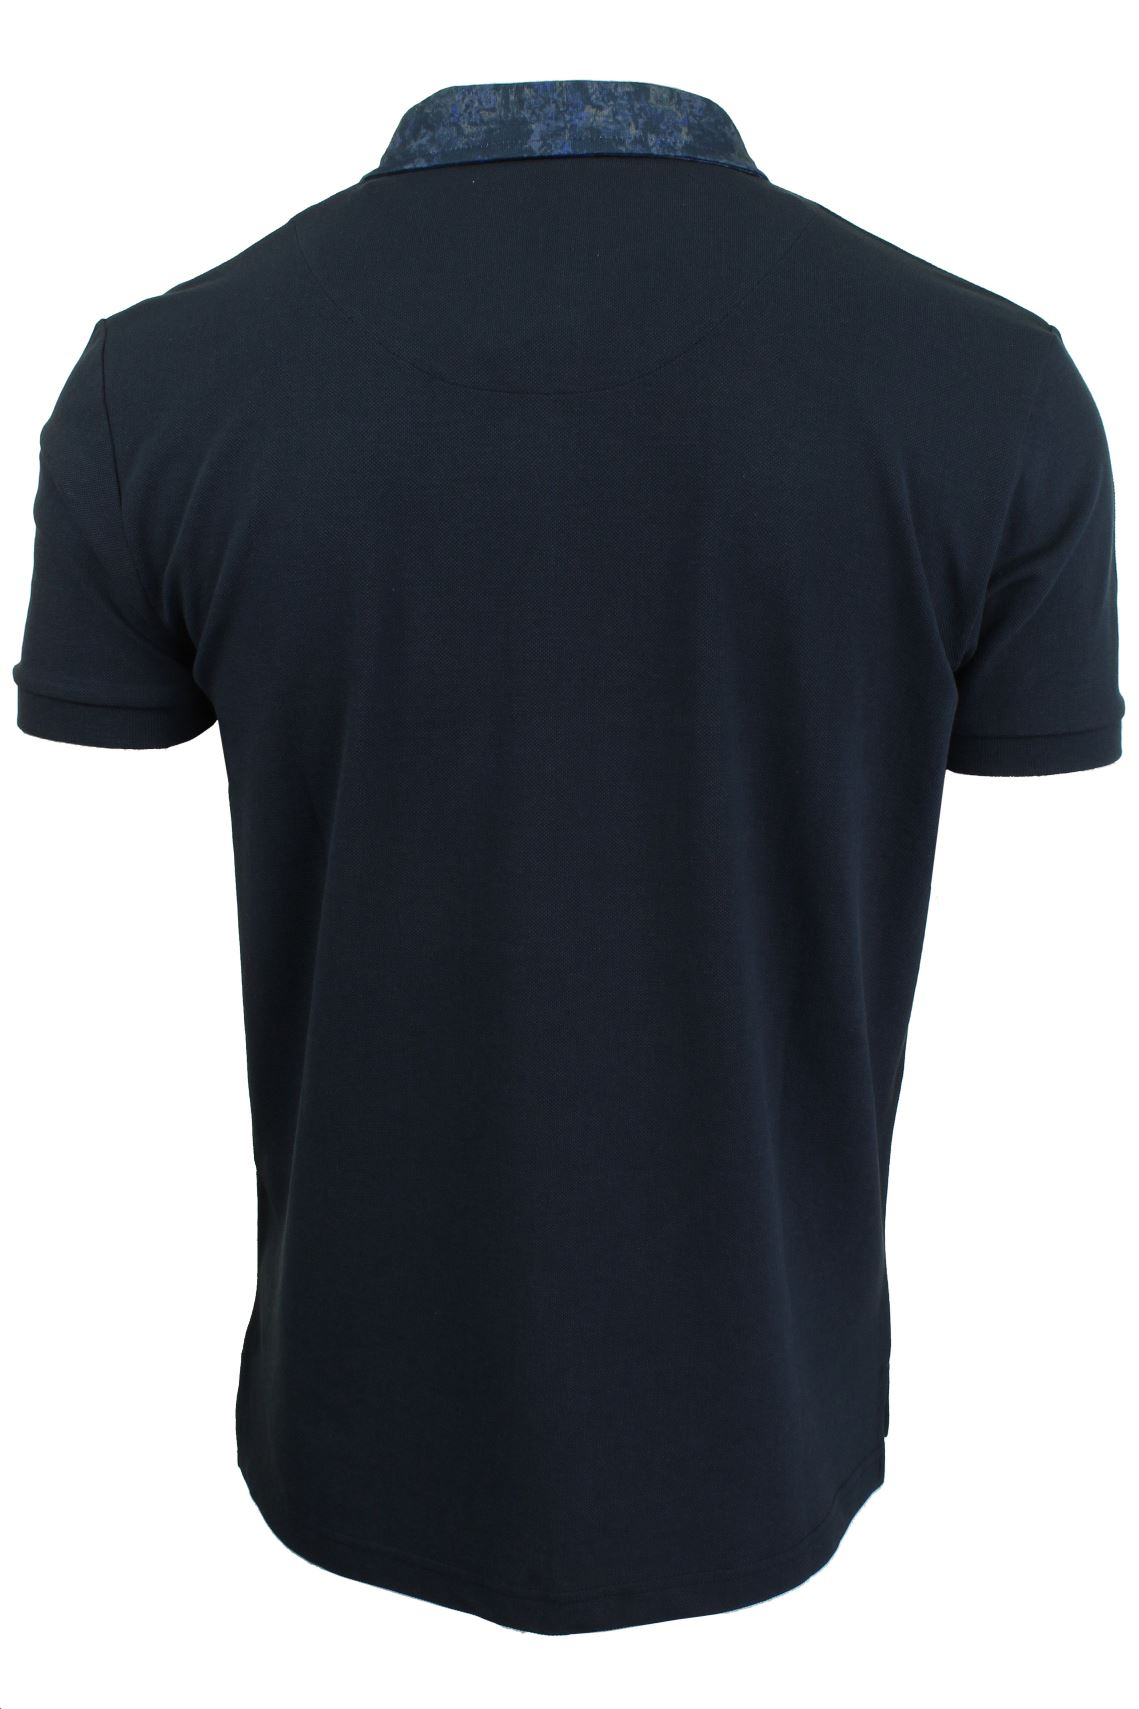 Mens-Short-Sleeved-Polo-Shirt-from-the-Blackout-Collection-by-Voi-Jeans thumbnail 13